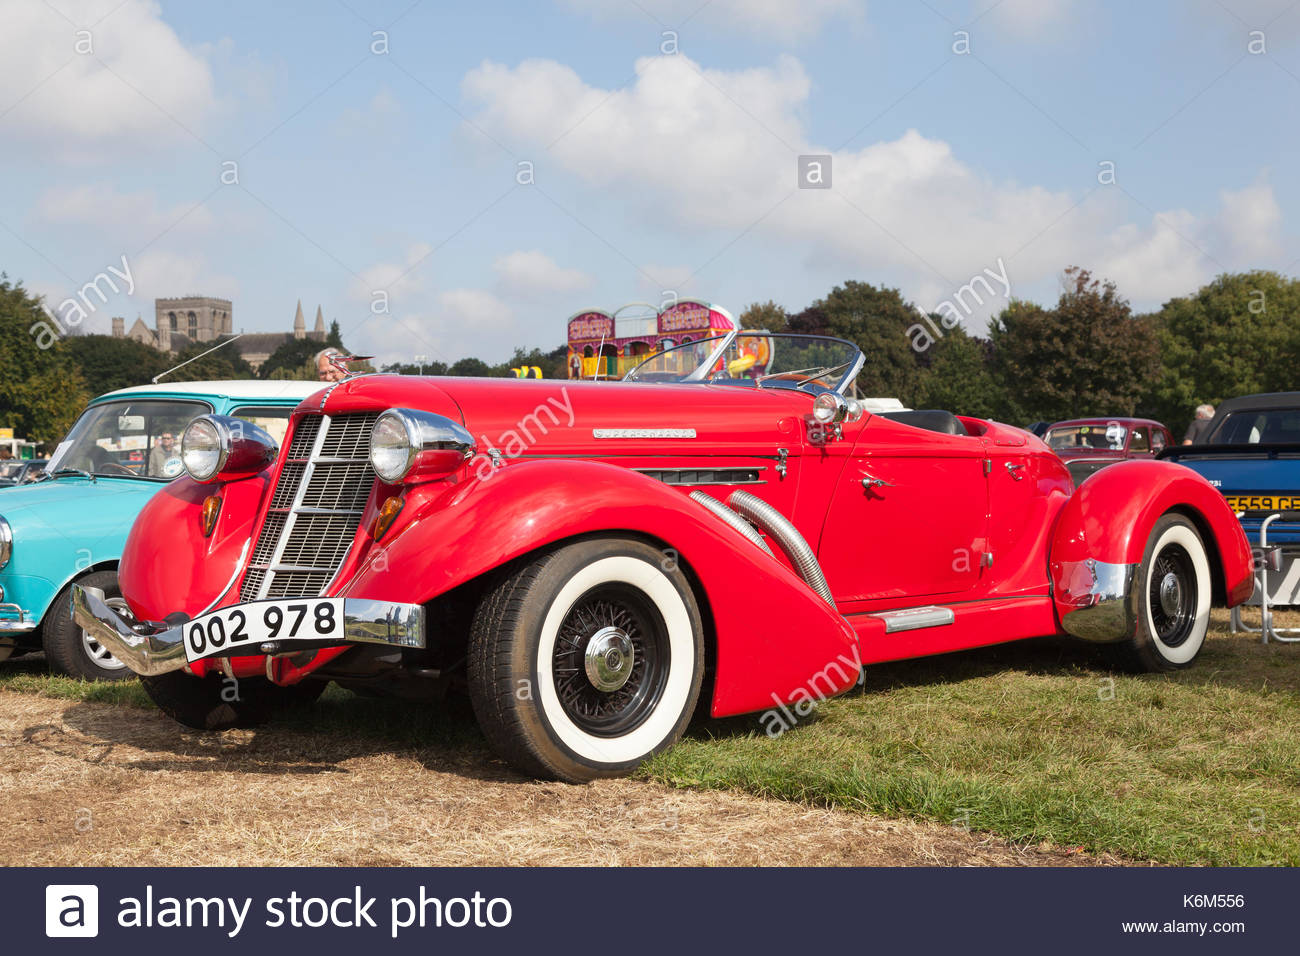 Auburn classic car on display at a vintage car show in Peterborough, Cambridgeshire, UK - Stock Image